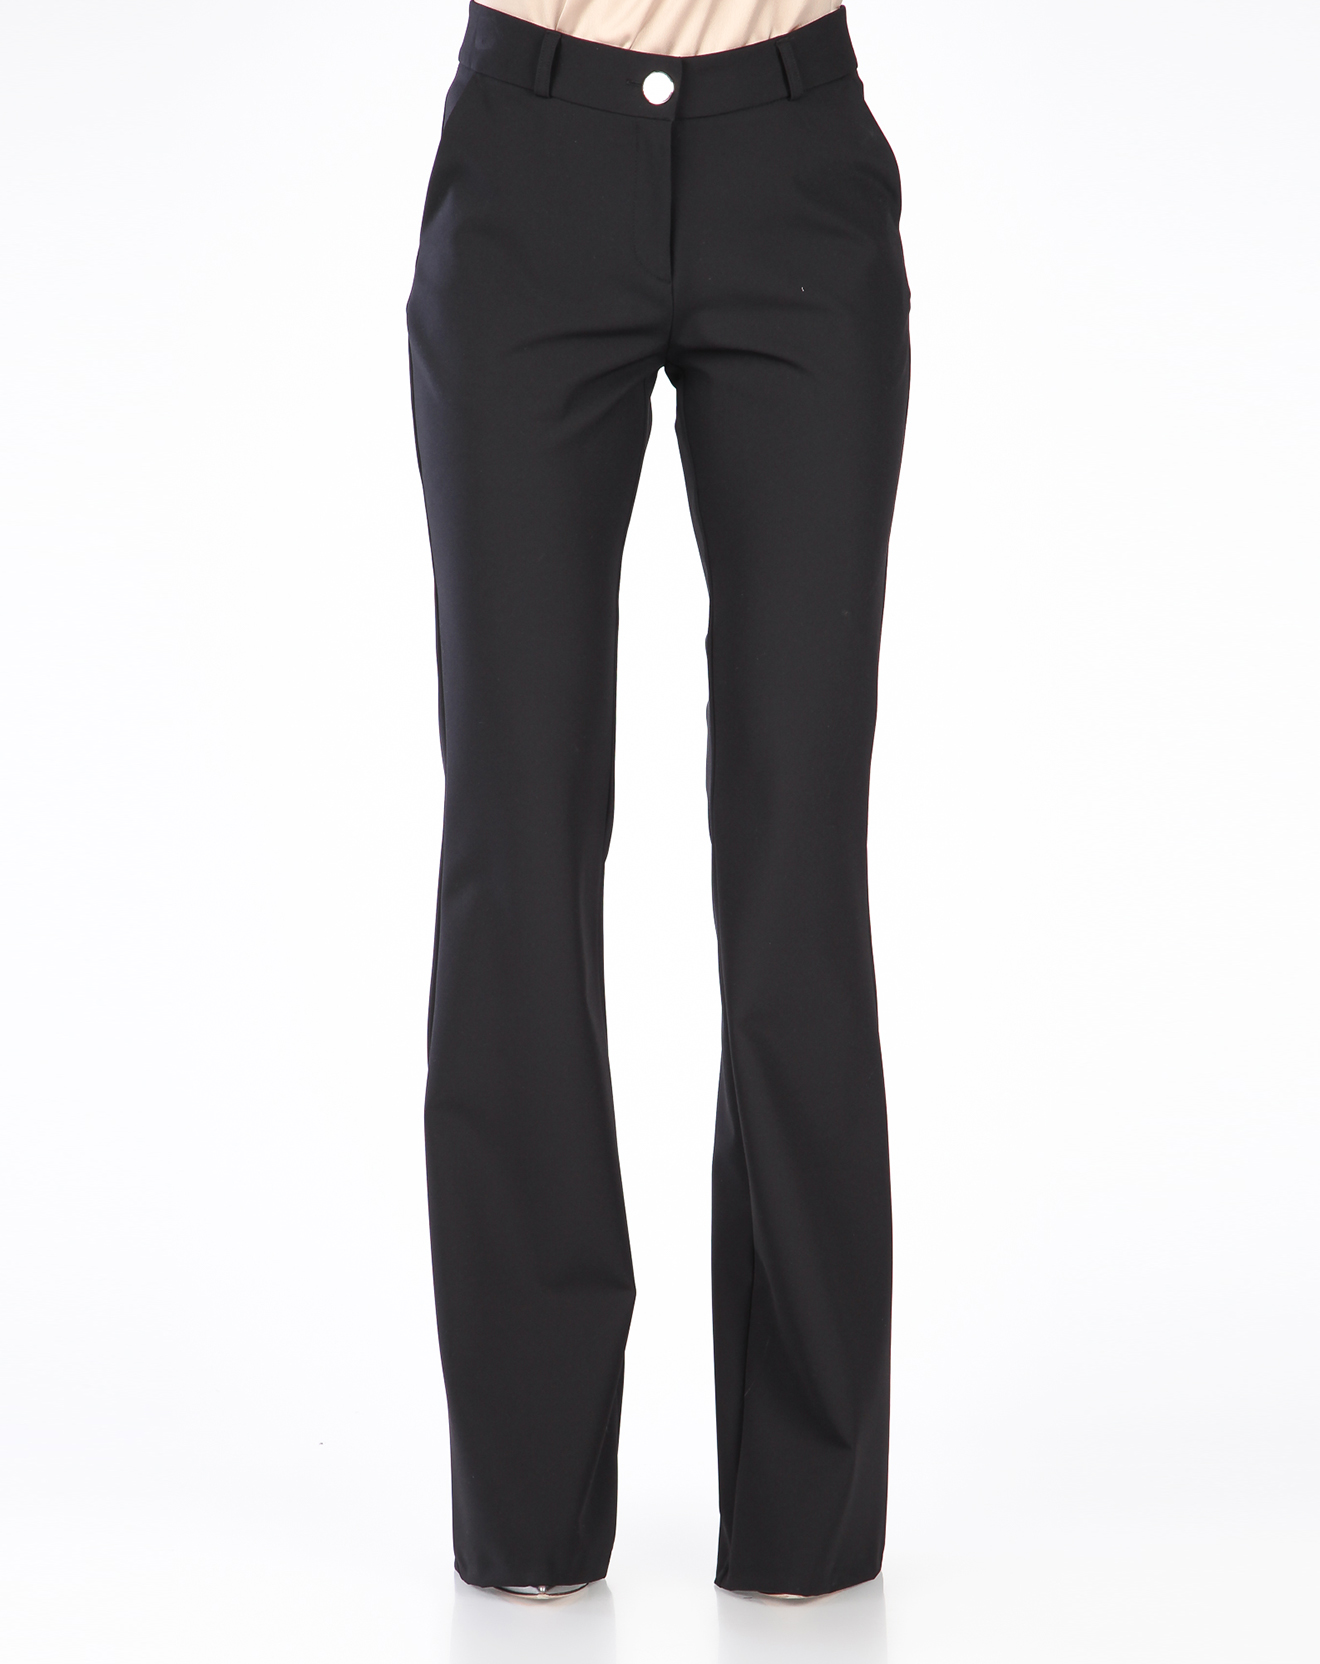 Pantalon Charline noir